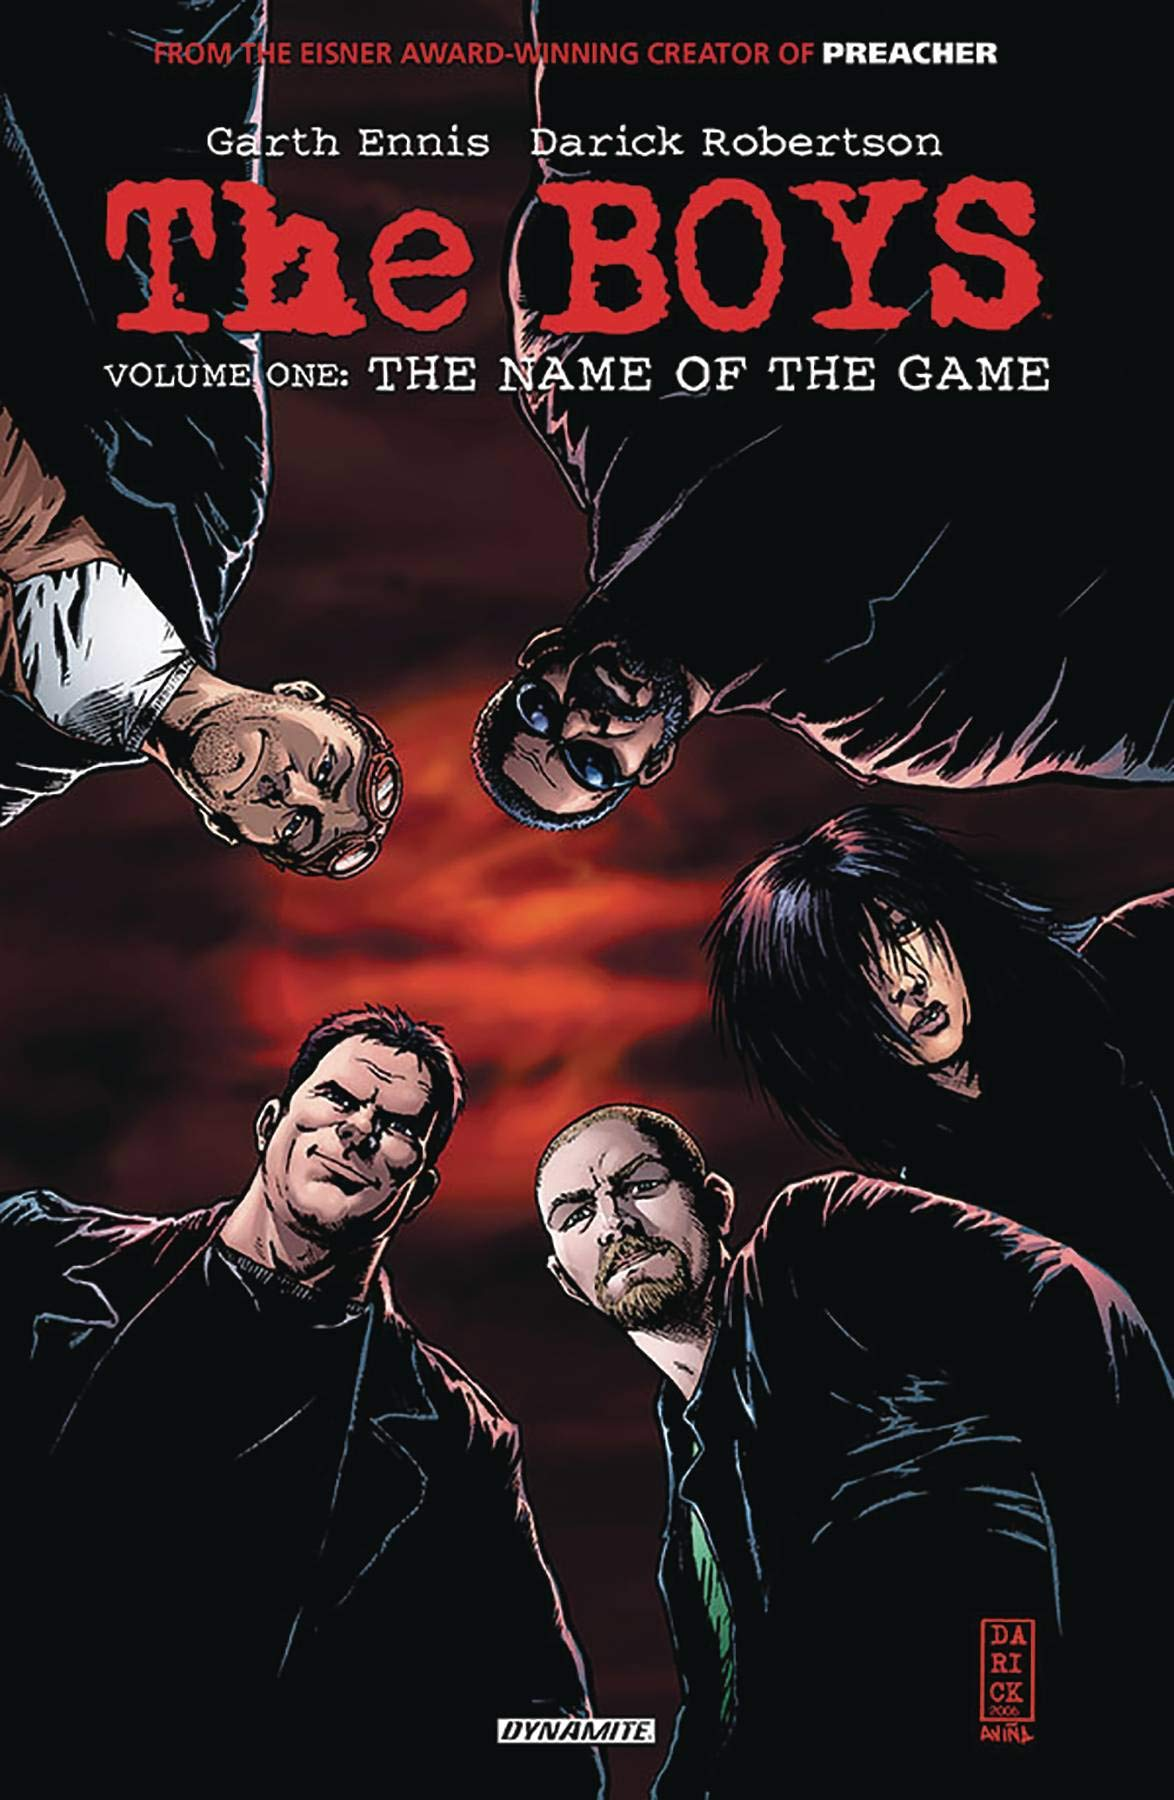 THE BOYS VOLUME 5 HEROGASM GRAPHIC NOVEL New Paperback Collects 6 Part Series